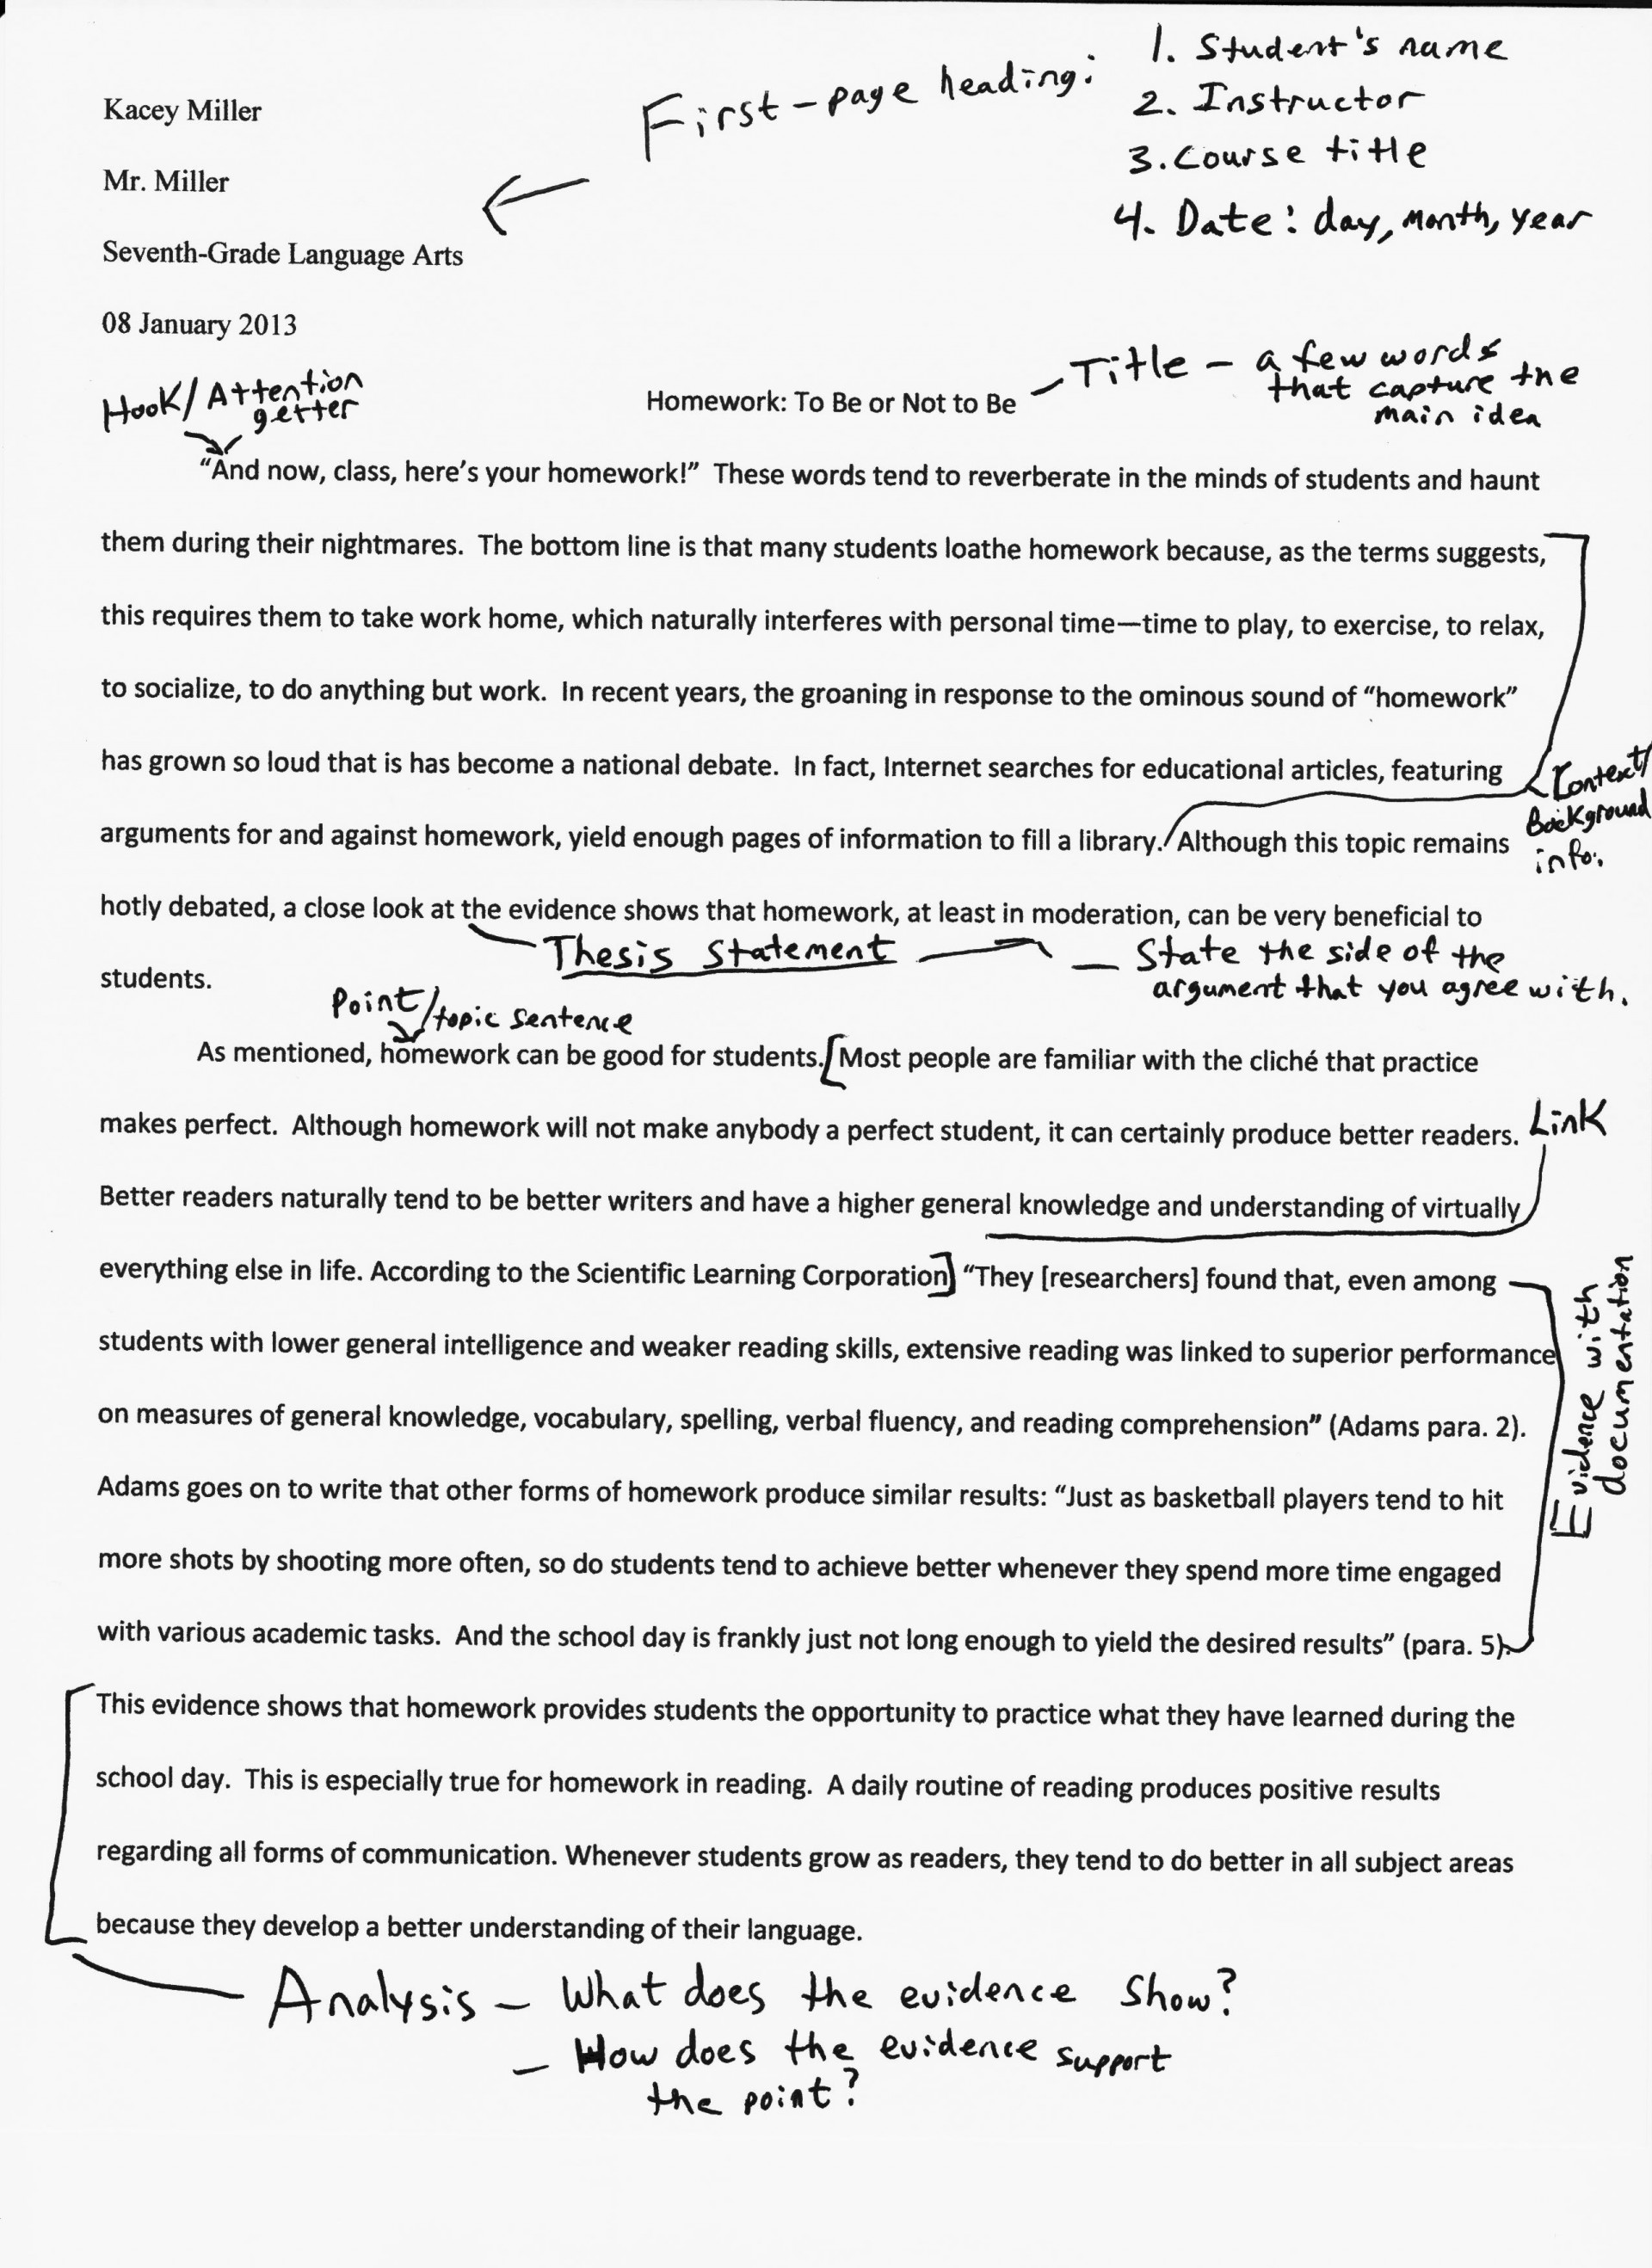 024 Mentor20argument20essay20page20120001 Essay Example Free Awesome Persuasive Outline Template On Texting While Driving Examples 1920